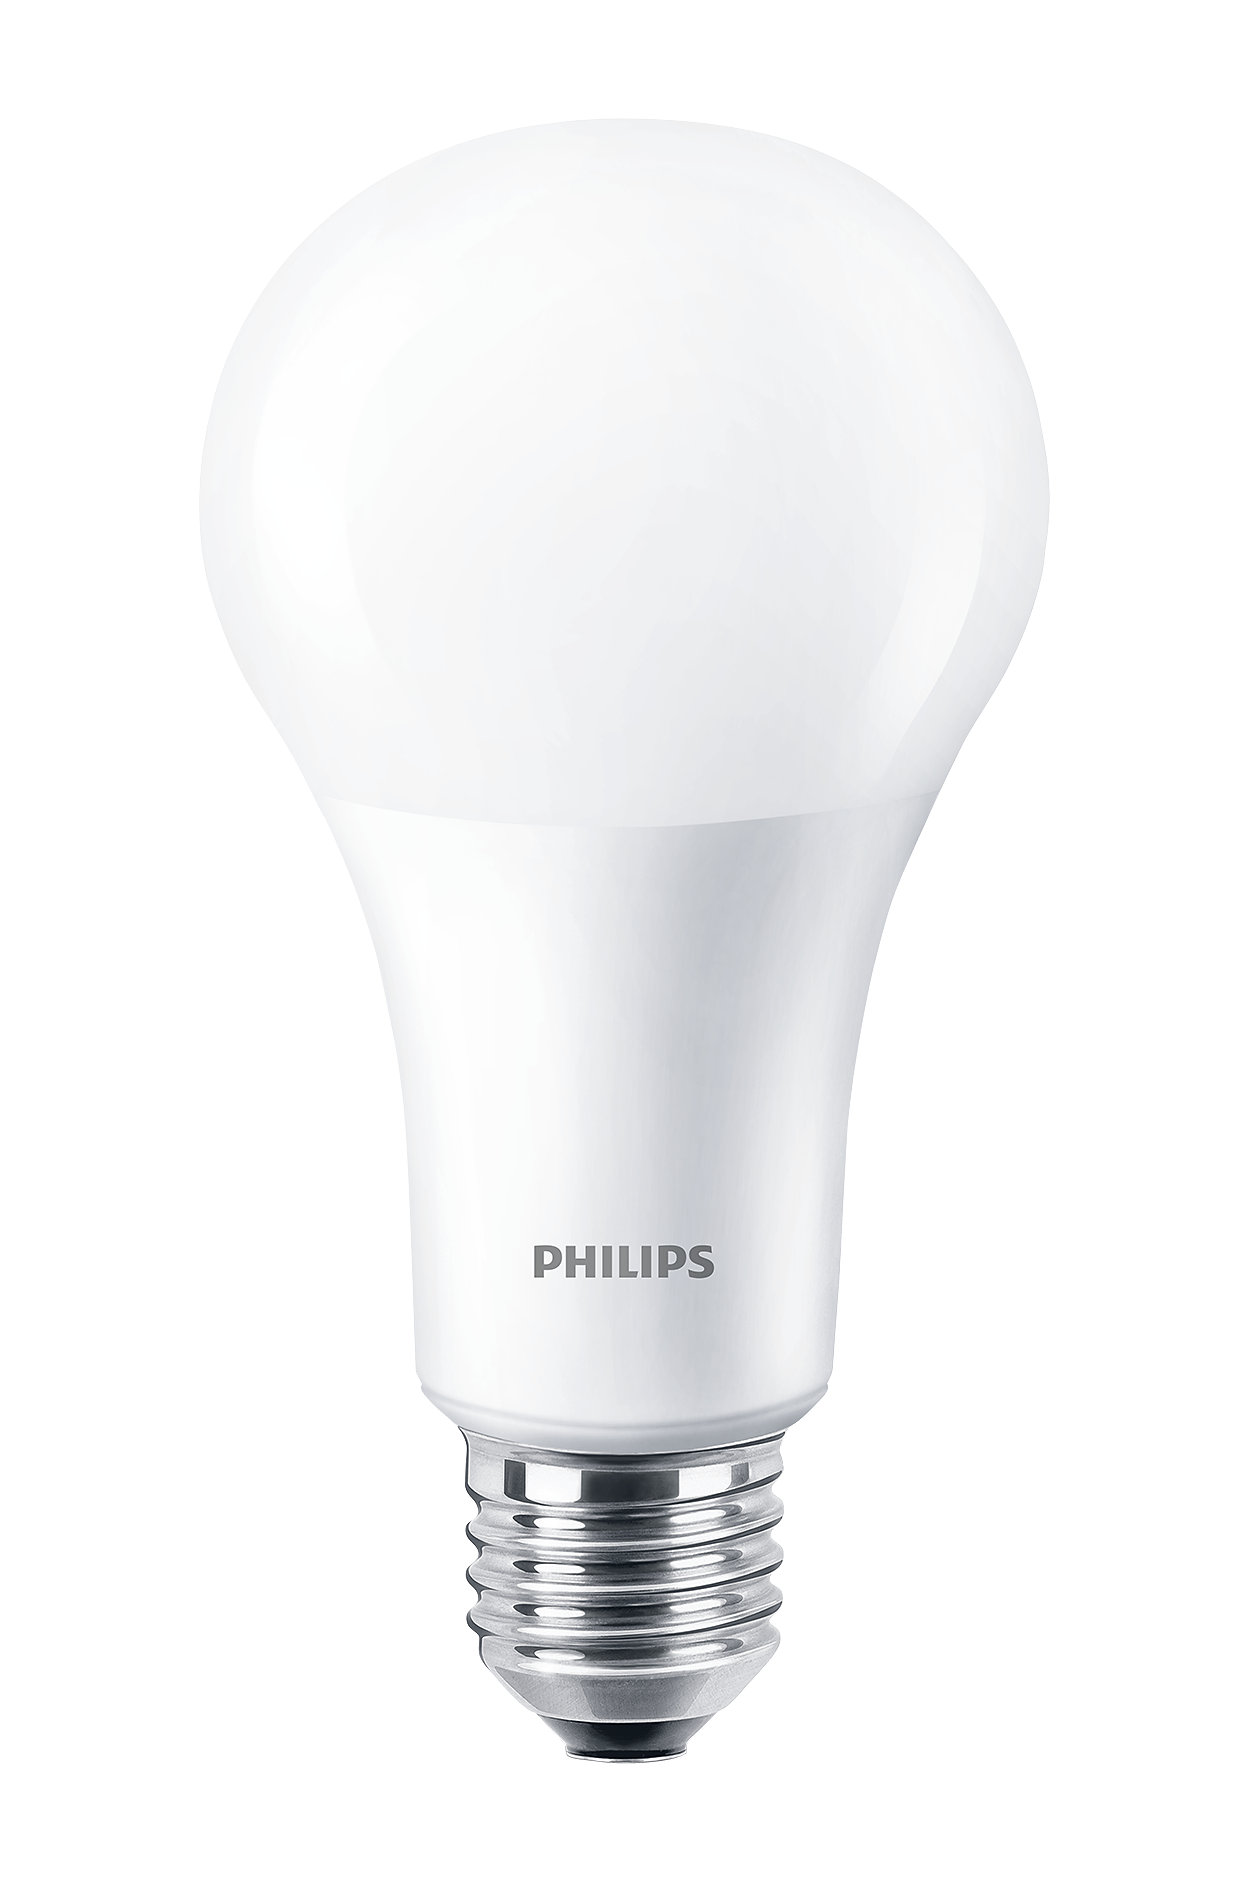 Philips MASTER lâmpada LED